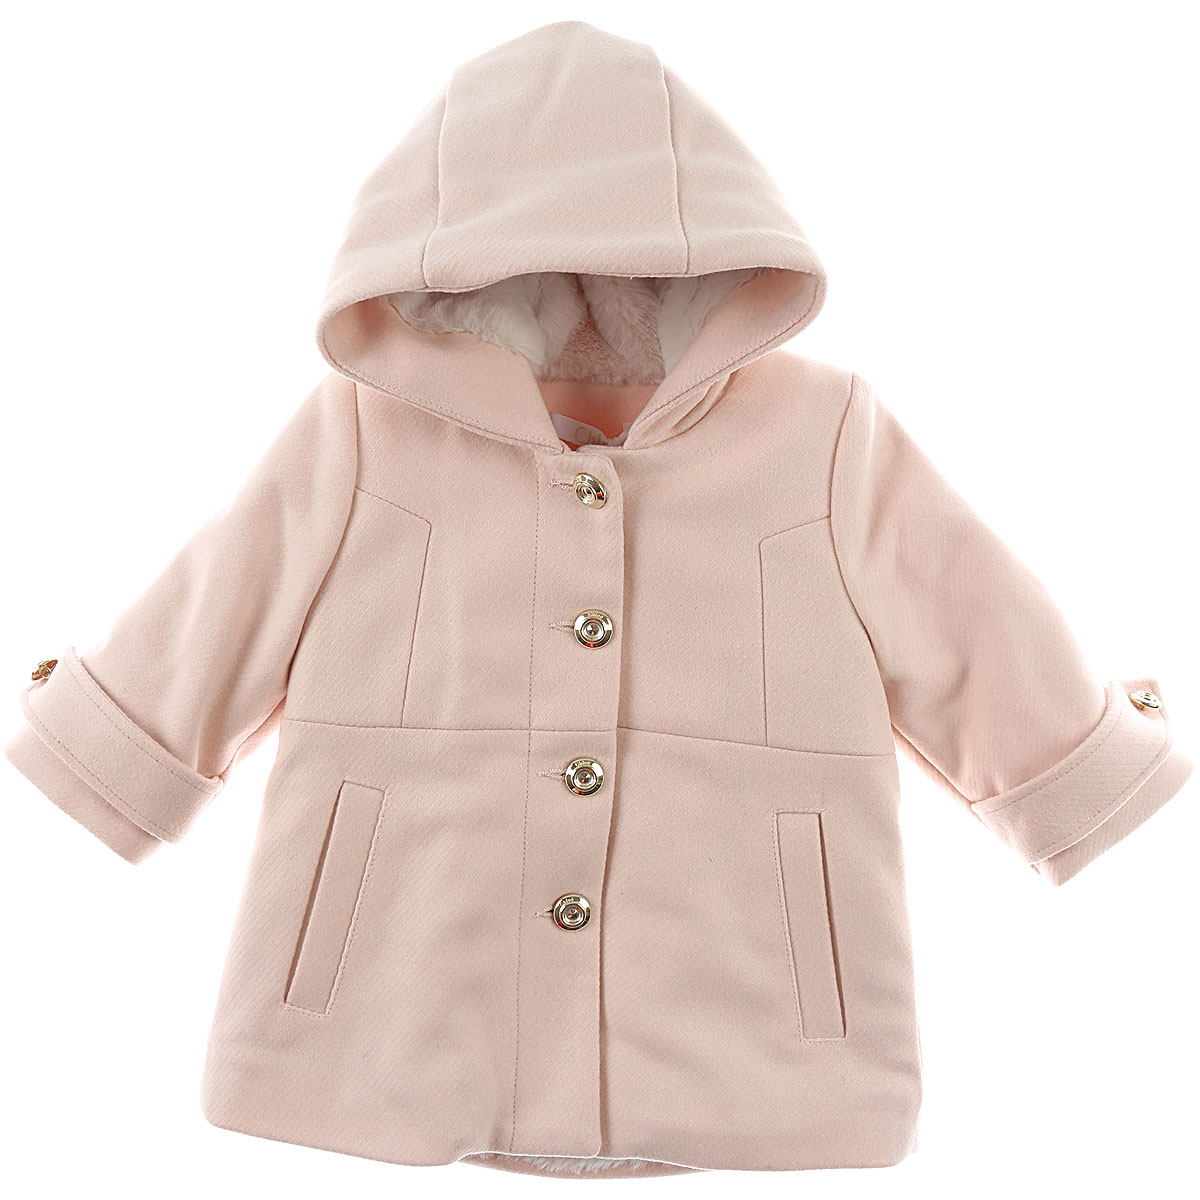 Image of Chloe Baby Coats for Girls, Pink, Wool, 2017, 12M 18M 2Y 3Y 6M 9M